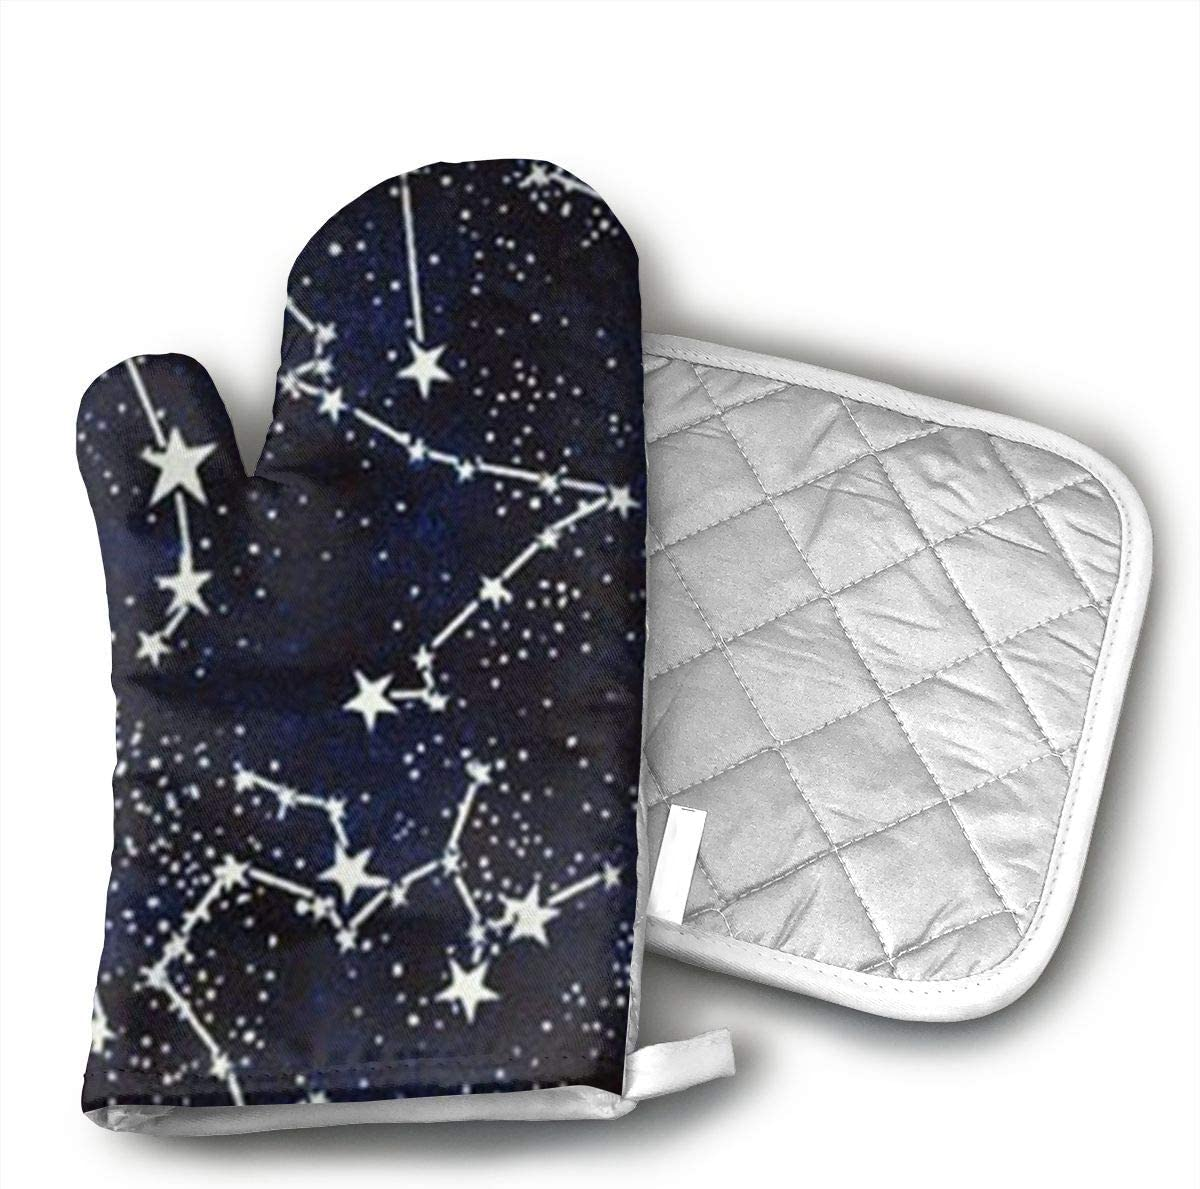 VFSFJKBG Glow in The Dark Constellations Midnight Fabric Oven Gloves, High Heat Resistance, Machine Washable High Heat Resistant Polyester Filling for Thanks Giving, Christmas